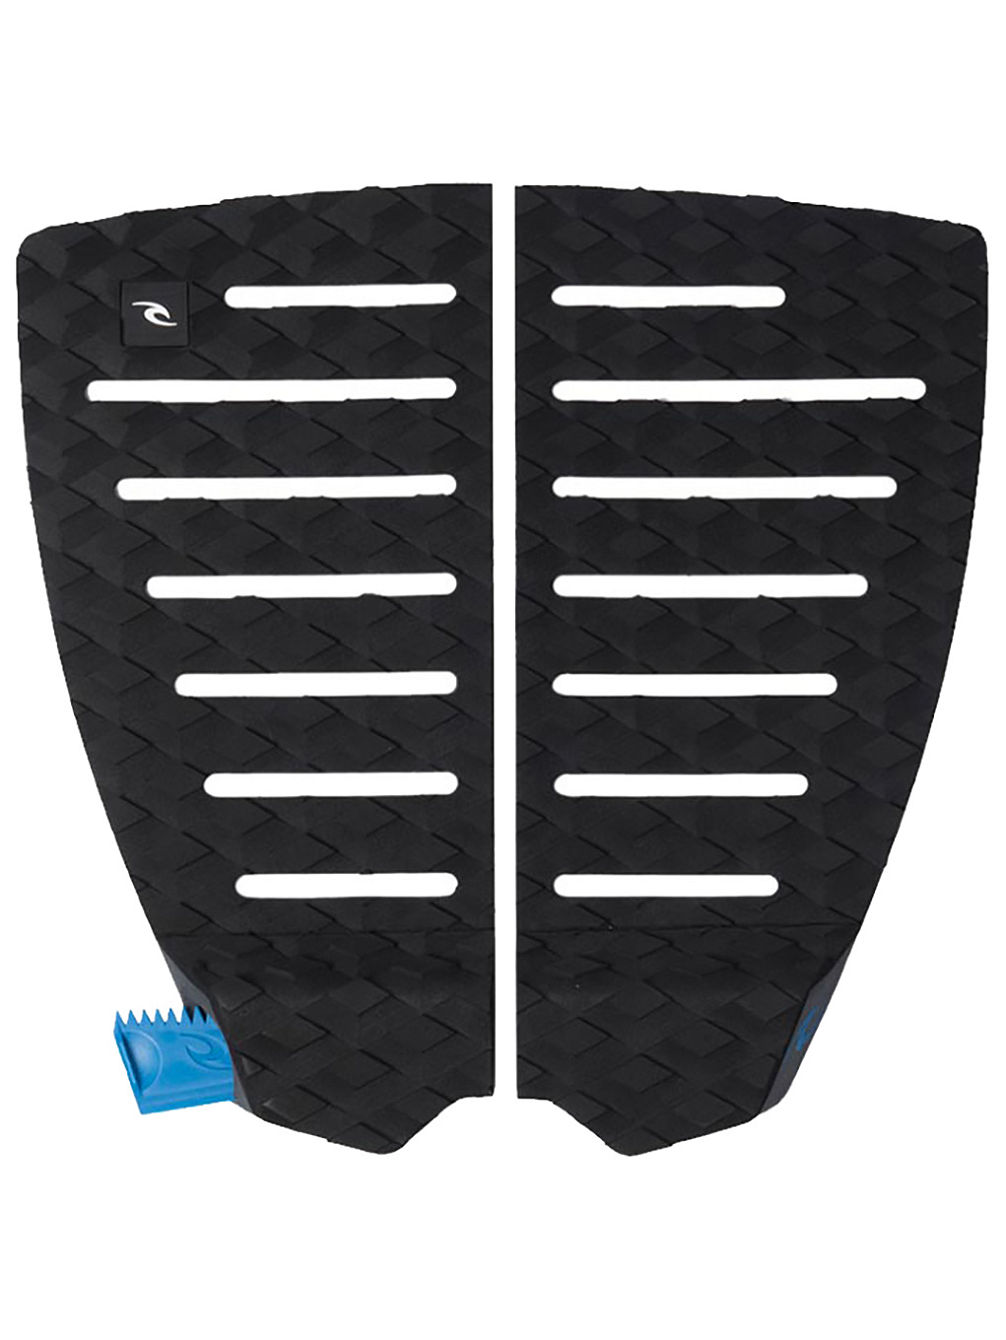 2 Piece DLX Traction Tail Pad